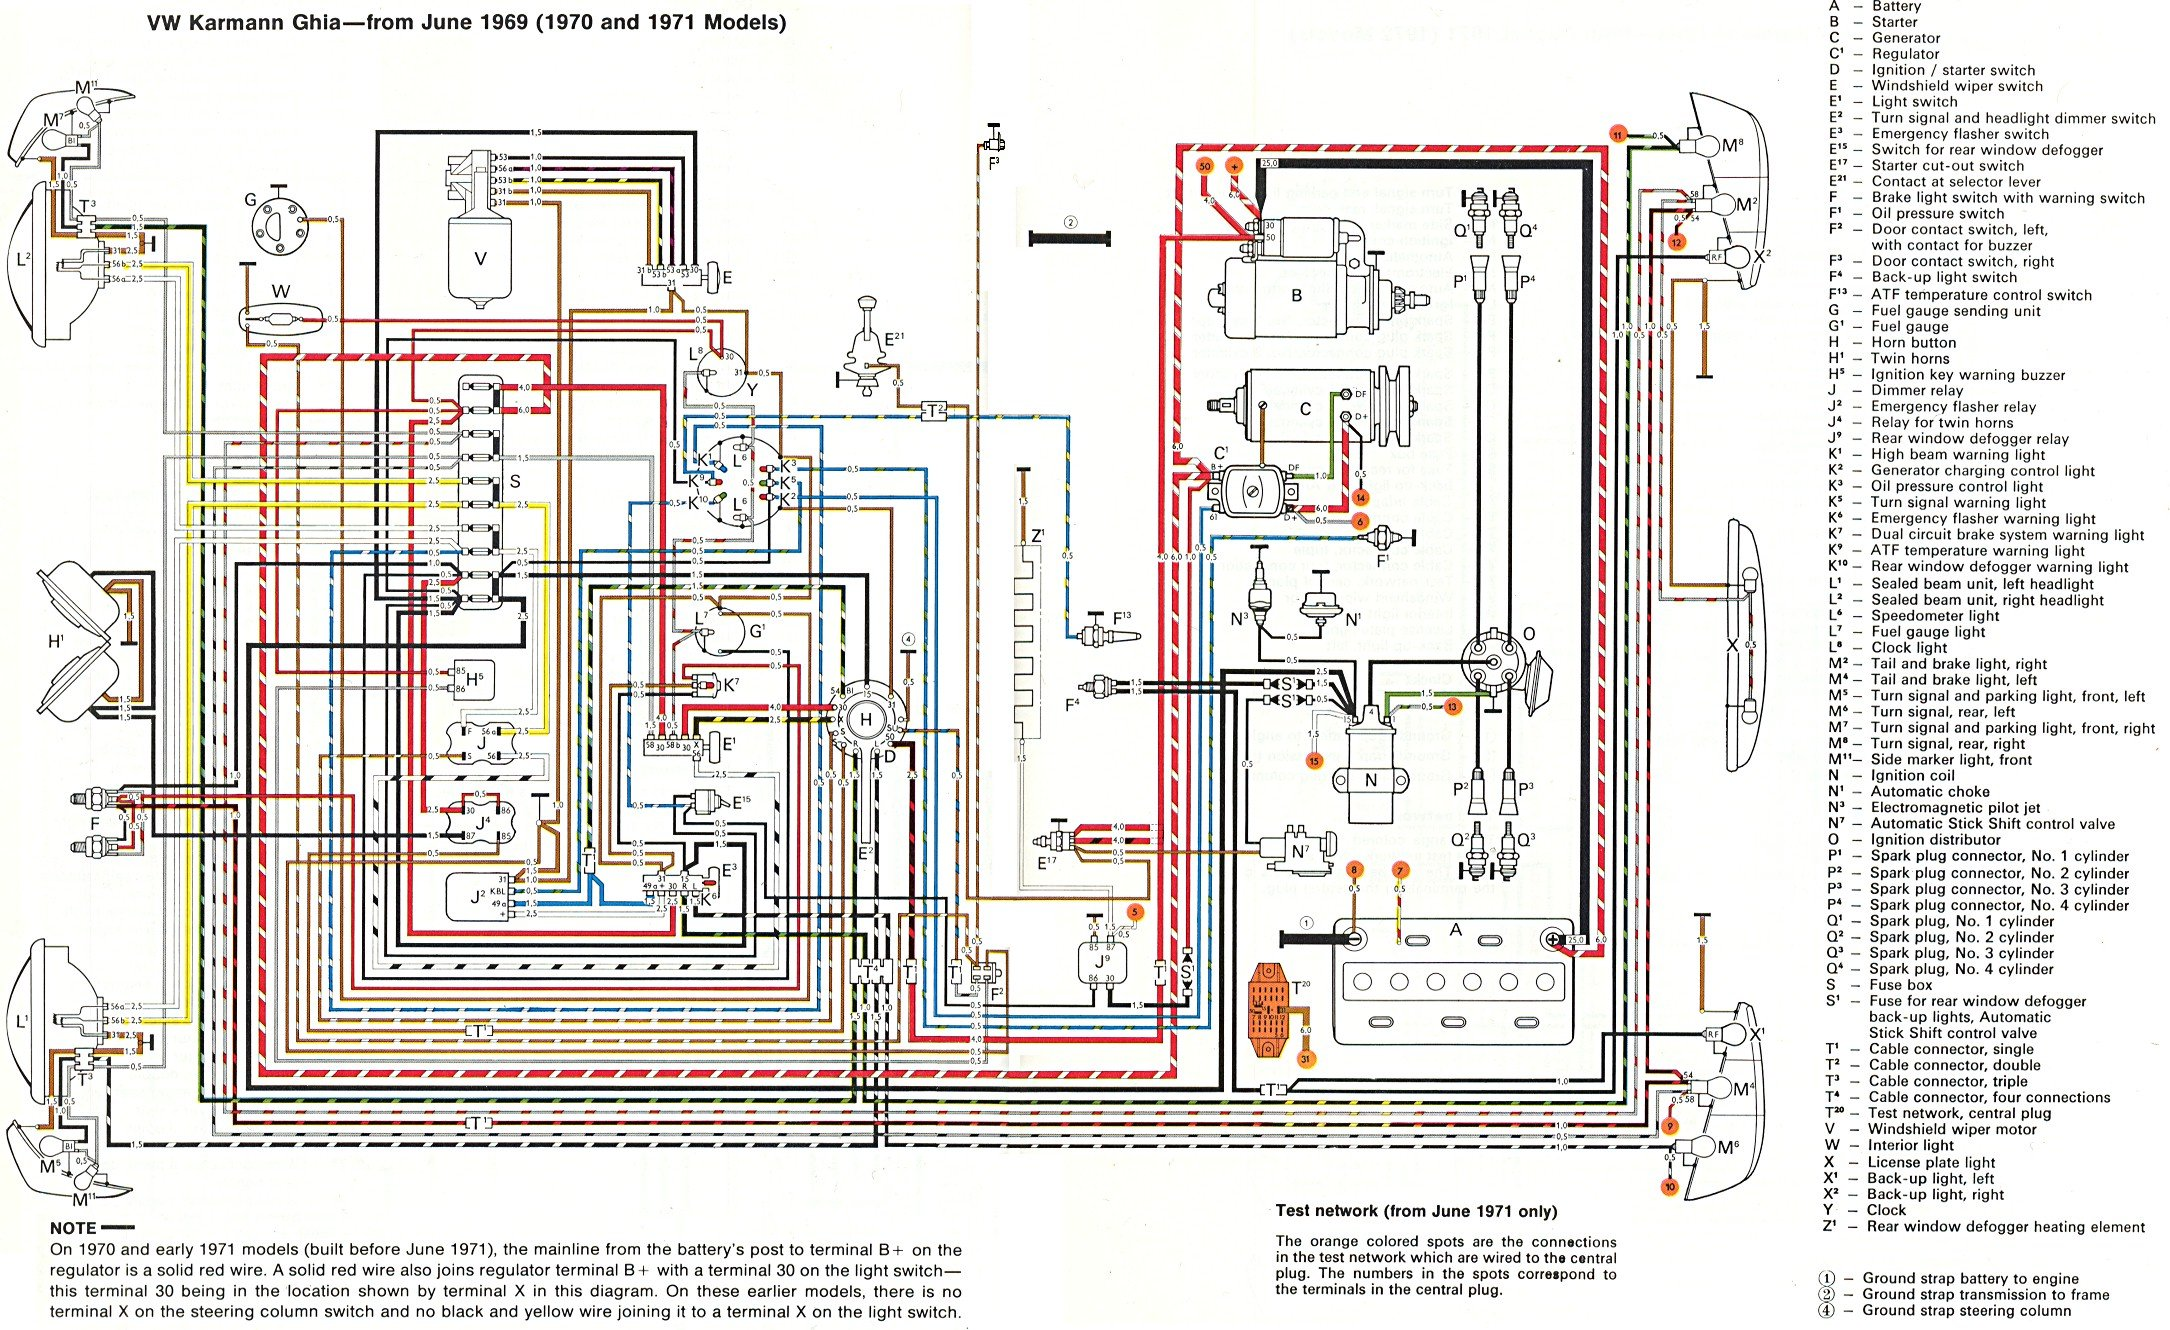 69 c10 fuse box 69 chevy c10 fuse box e1 wiring diagram  69 chevy c10 fuse box e1 wiring diagram